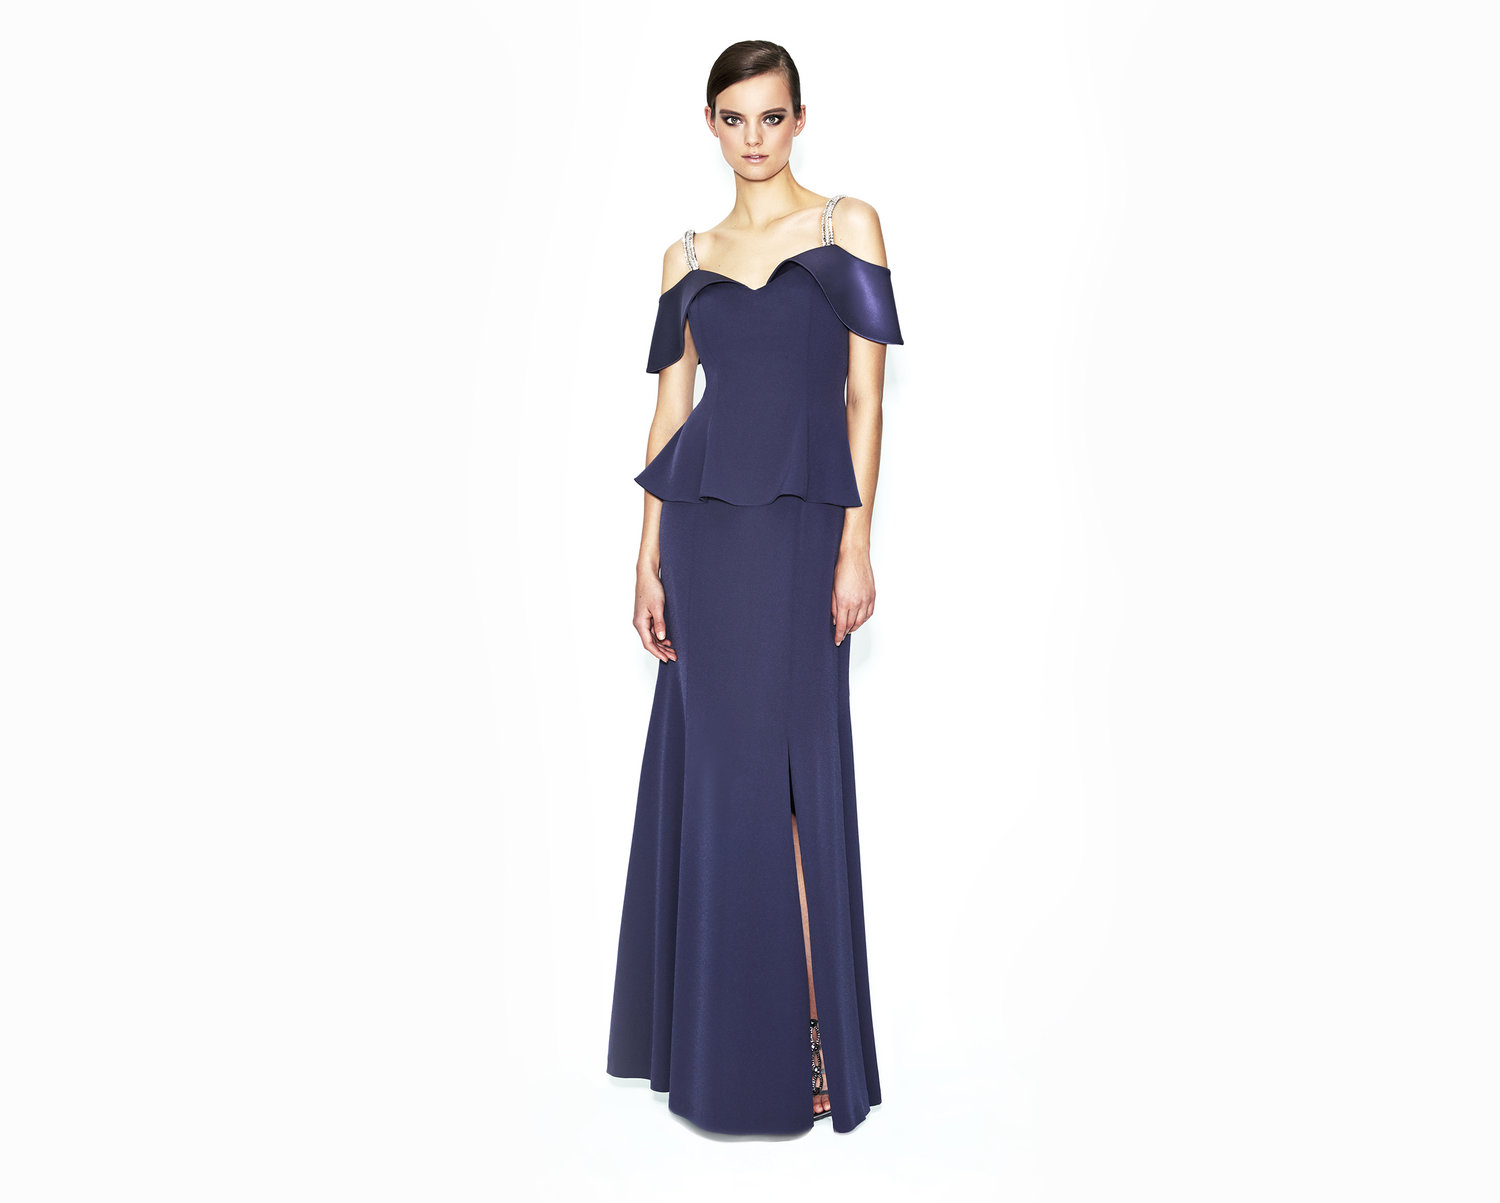 dark purple satin mother of the bride evening dress